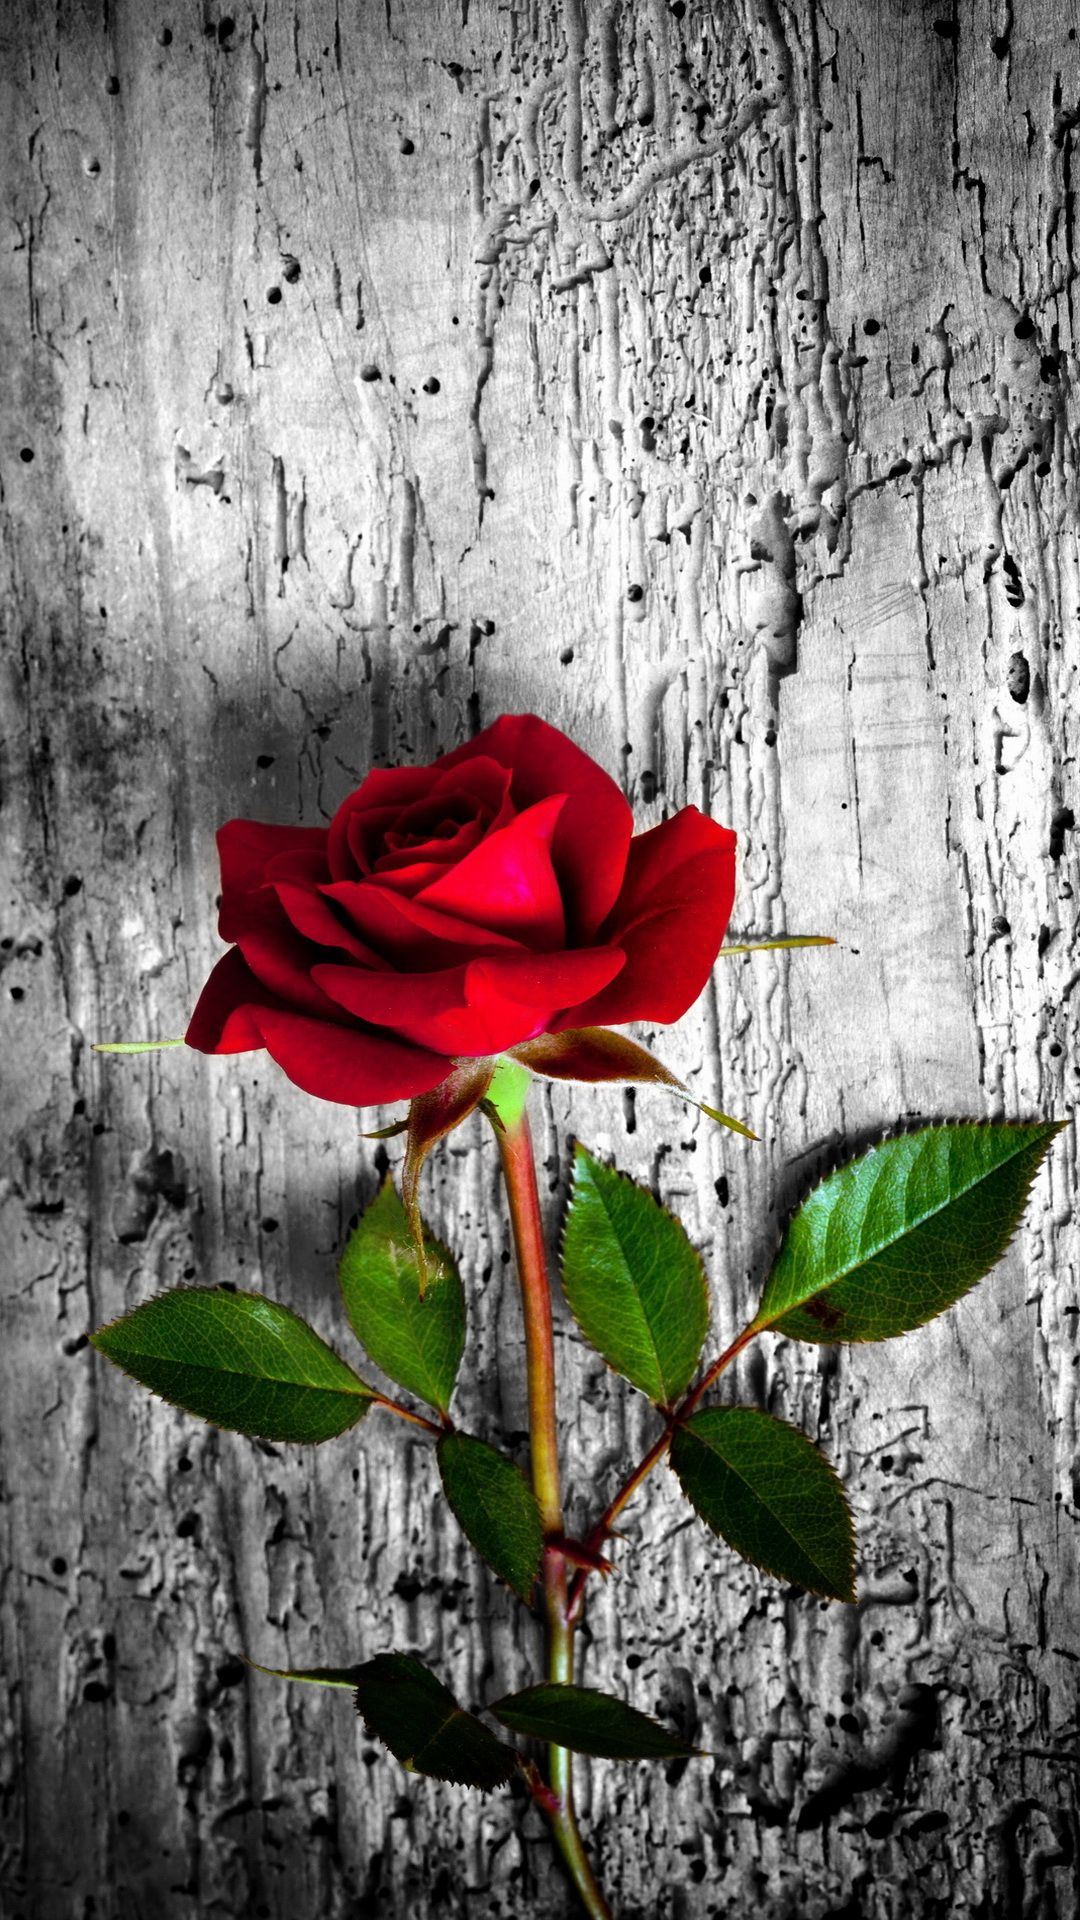 Red rose 26 happy valentine 39 s day roses flowers - Valentine s day flower wallpaper ...